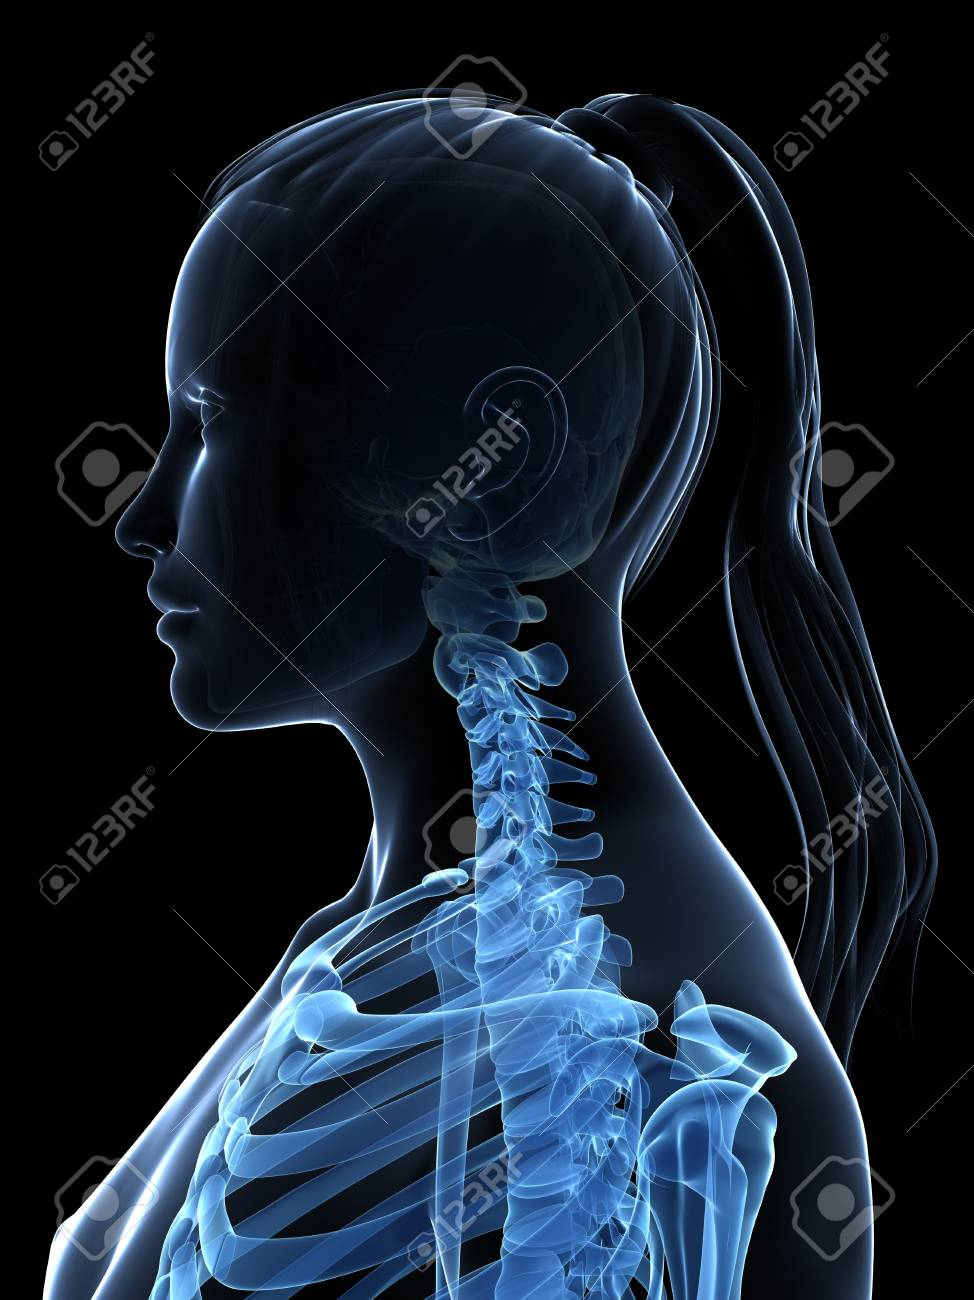 Female Neck Bones Artwork Stock Photo Picture And Royalty Free